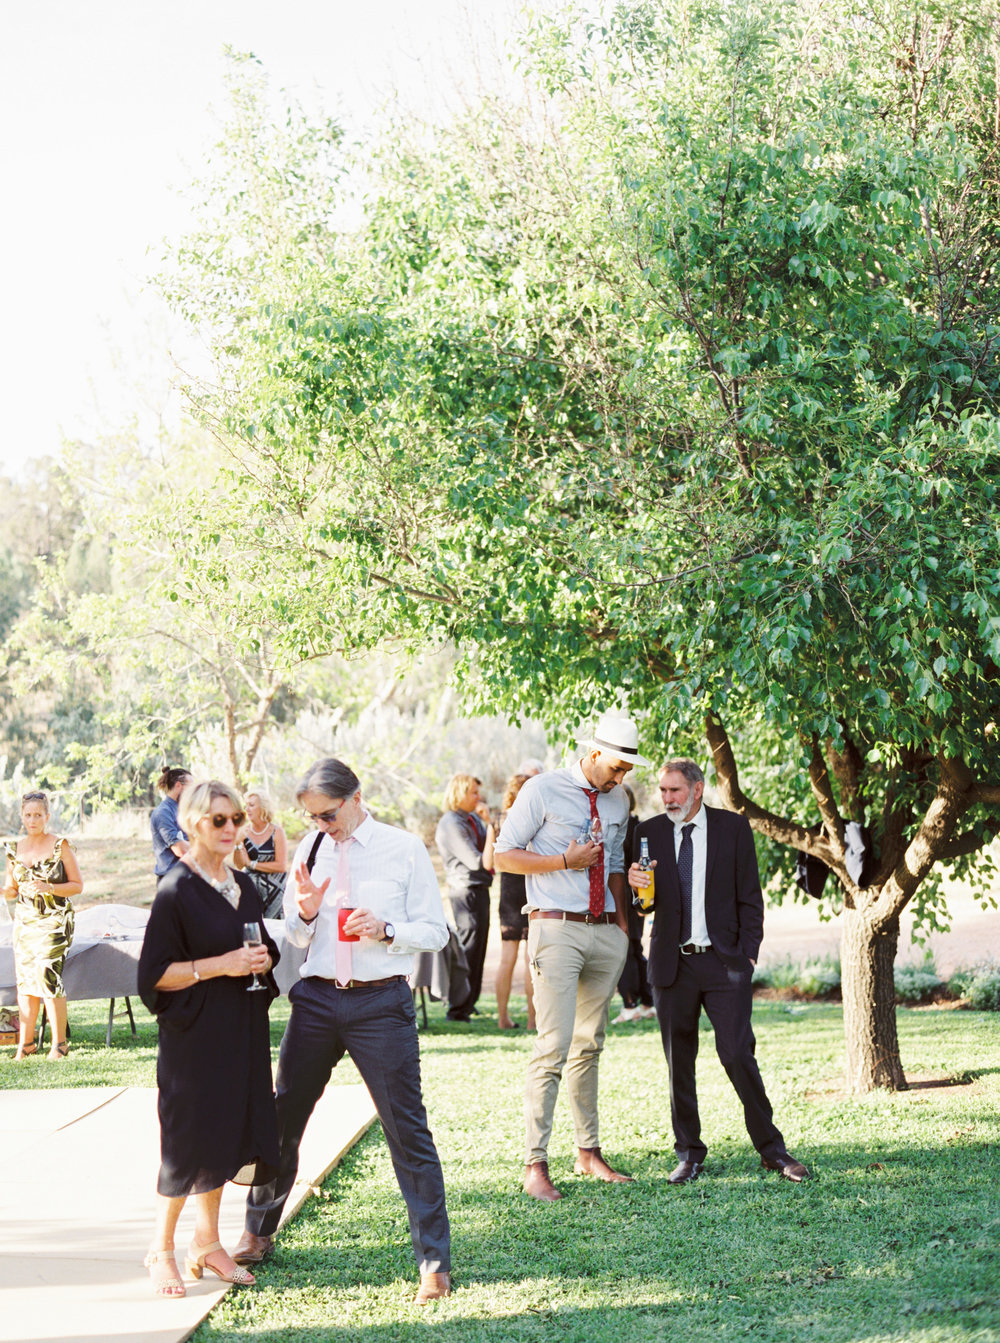 00077- Olive Tree Mediterranean Wedding in Mudgee NSW Australia Fine Art Film Wedding Lifestyle Photographer Sheri McMahon_.jpg